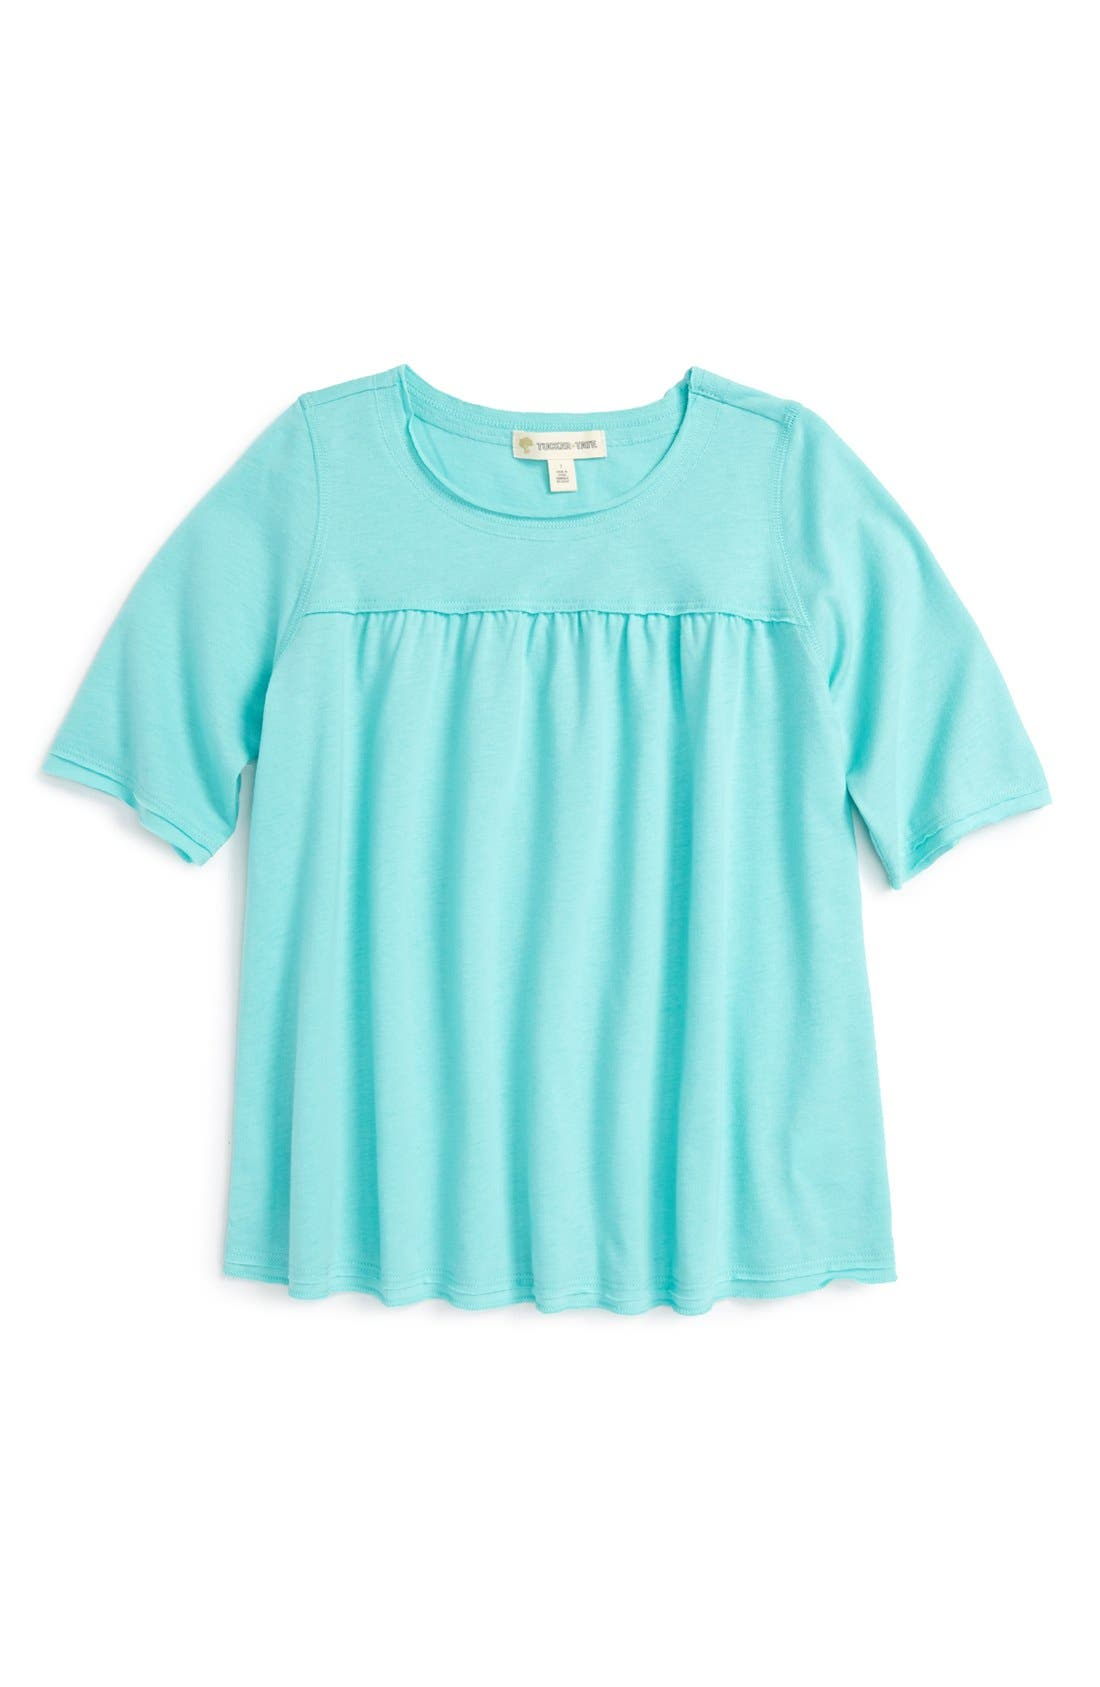 TUCKER + TATE Knit Top, Main, color, 445